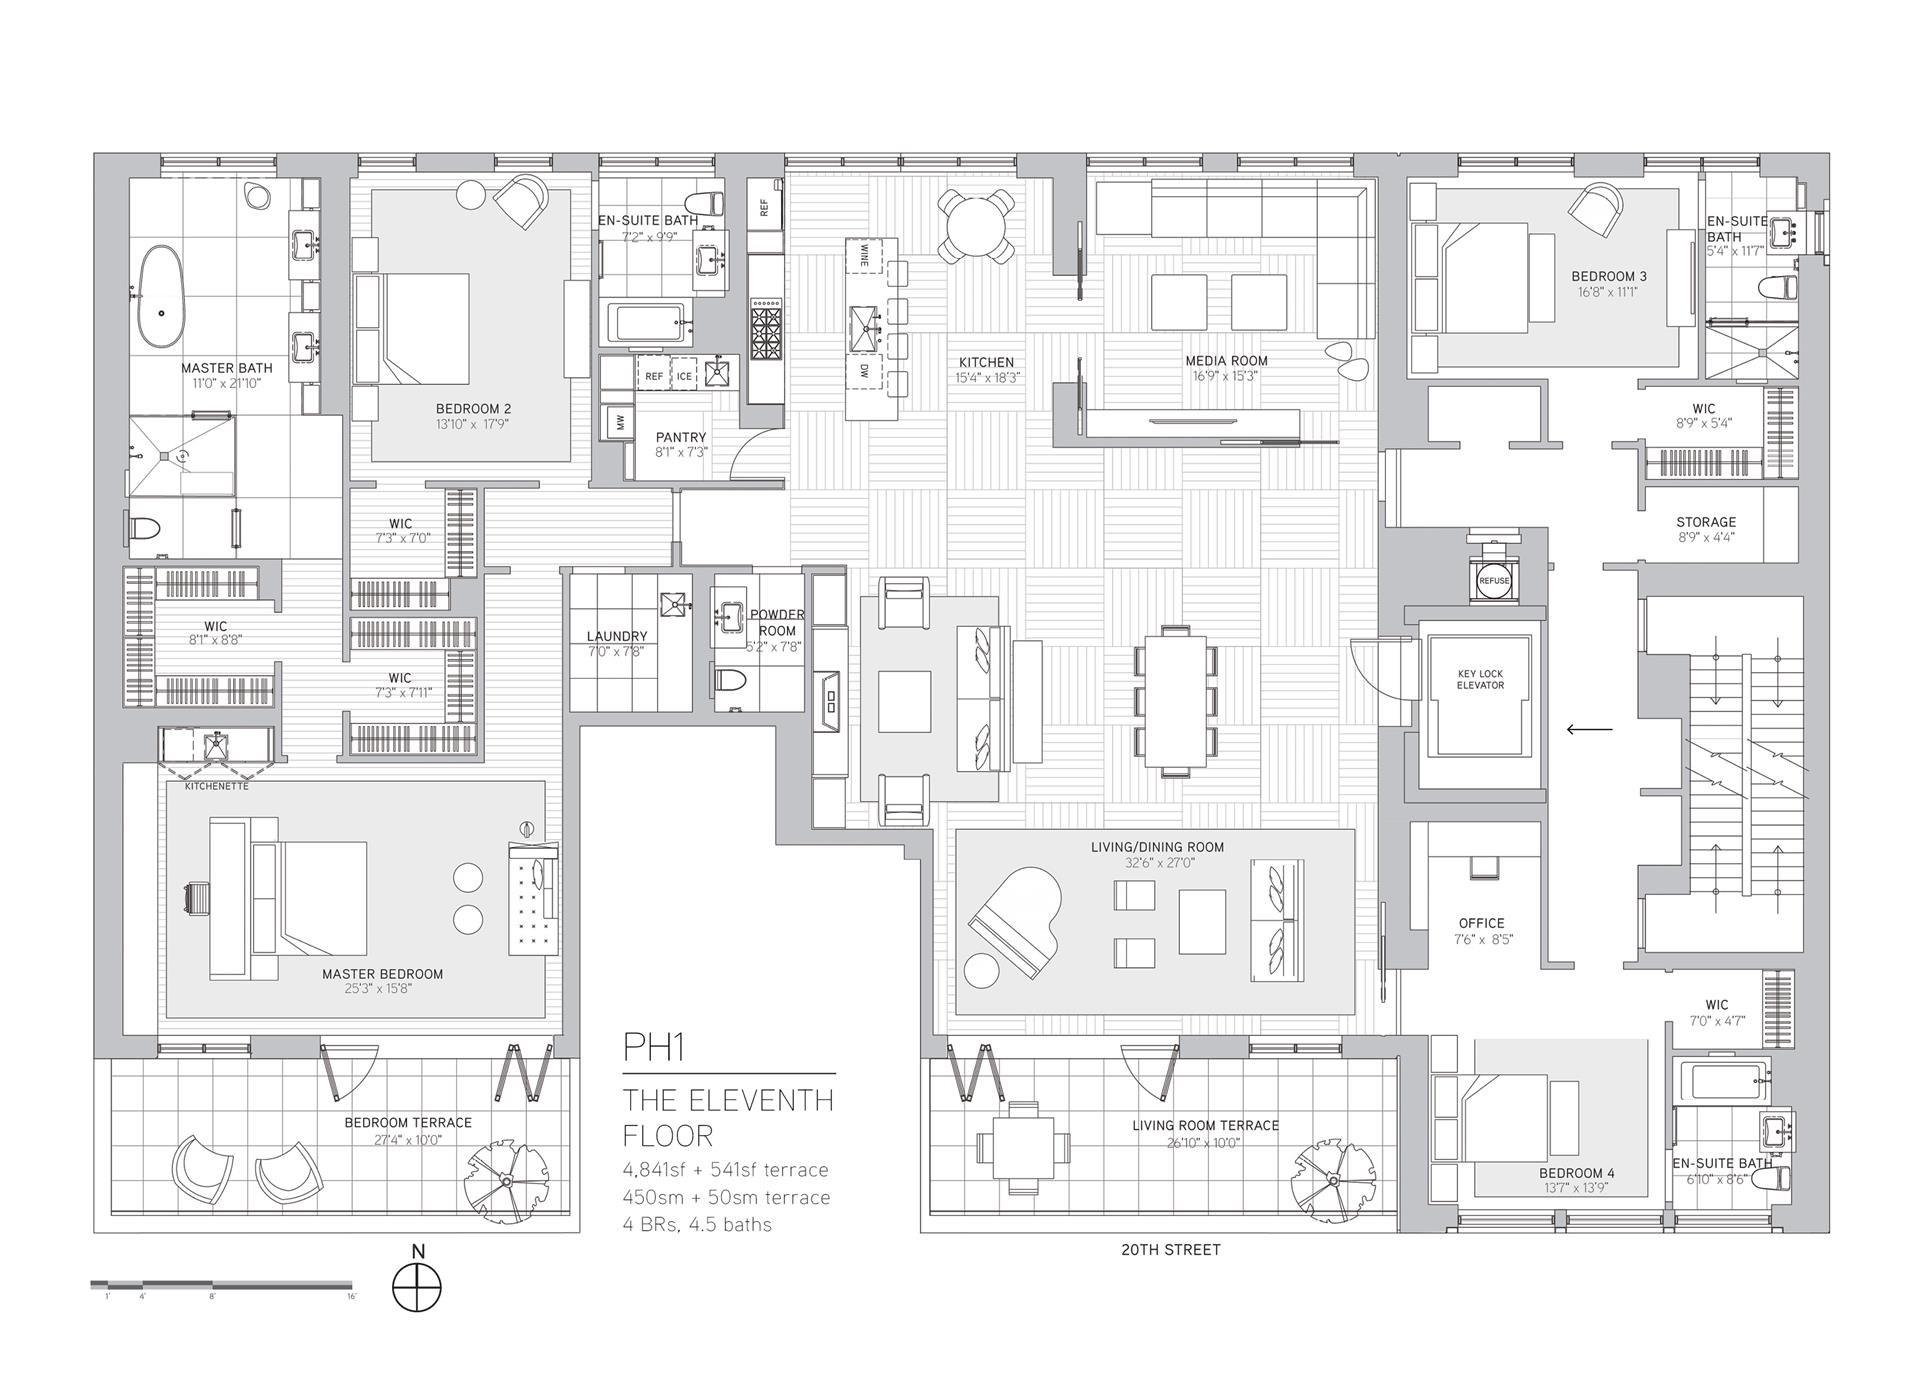 Floor plan of 21W20, 21 West 20th St, PH1 - Flatiron District, New York